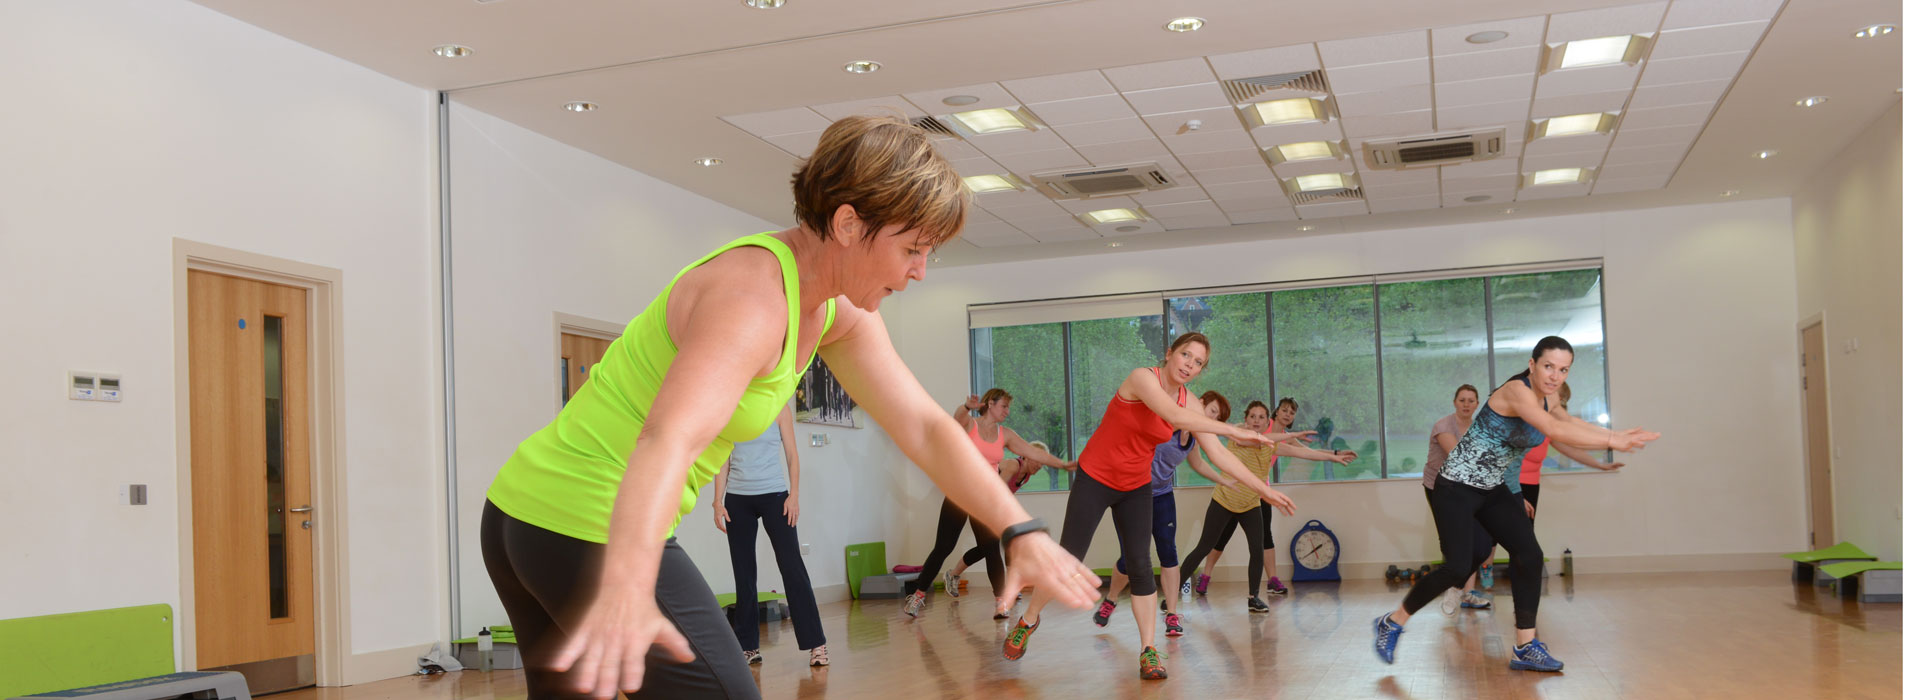 Lean and Mean classes at Malvern Active